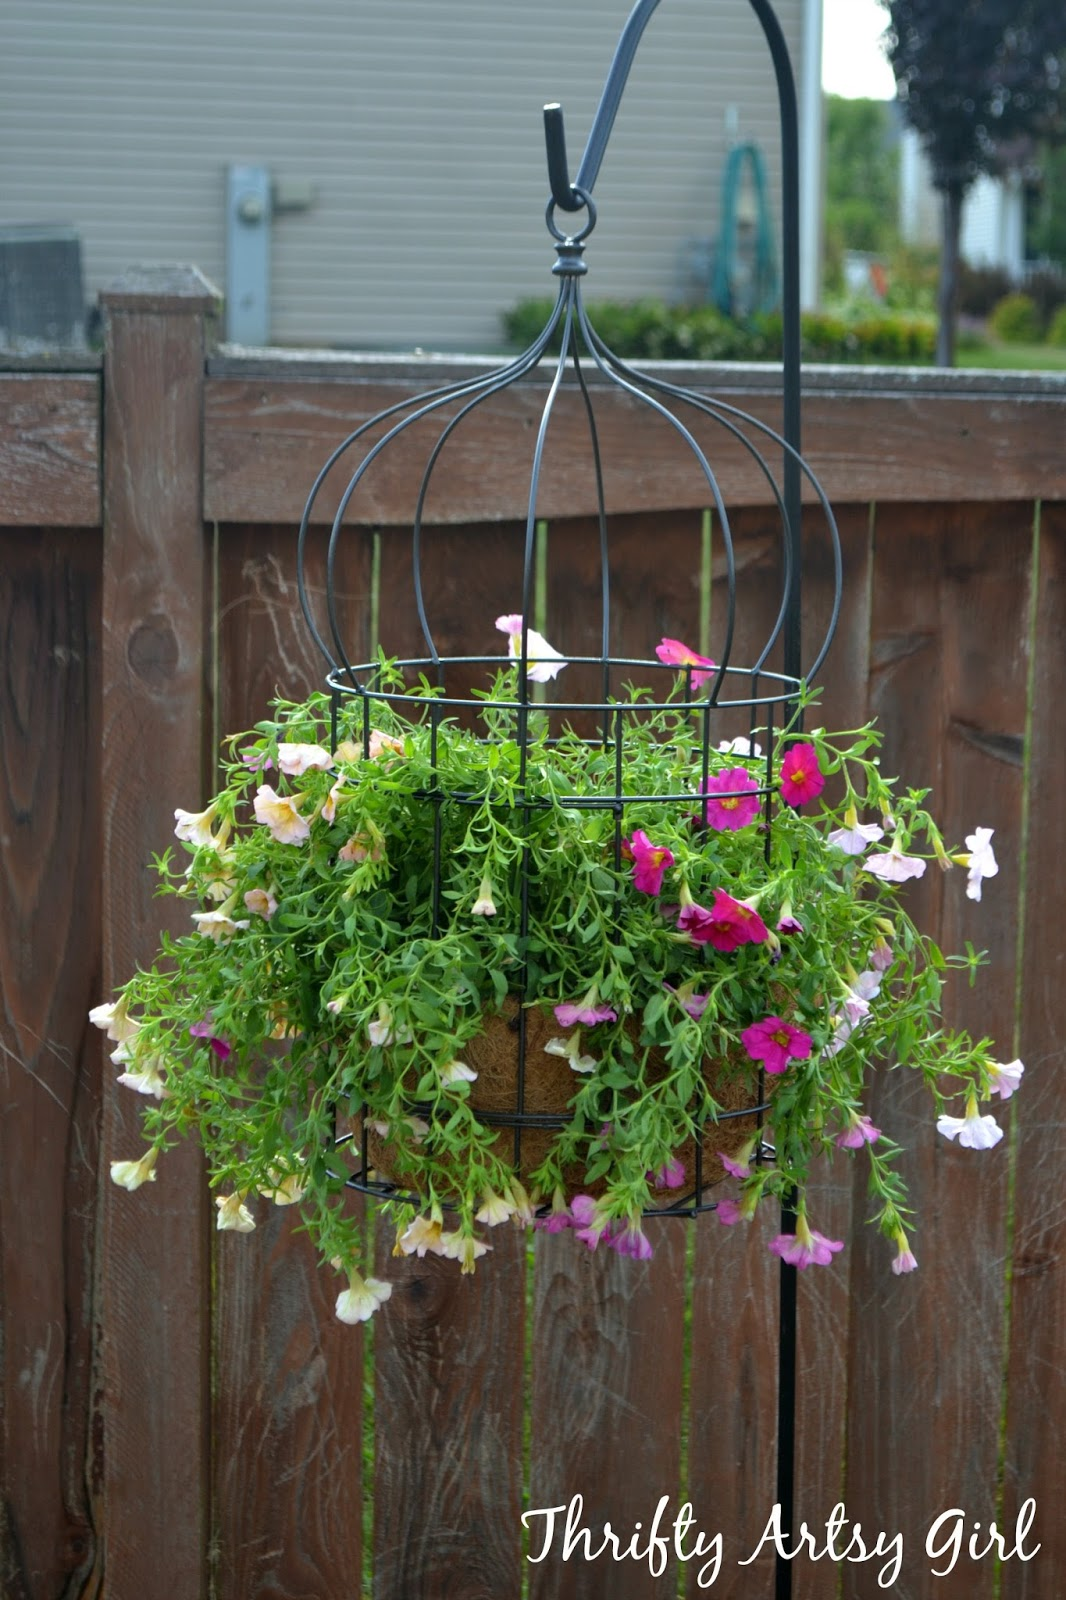 thrifty artsy girl diy simply sweet hanging birdcage planter. Black Bedroom Furniture Sets. Home Design Ideas